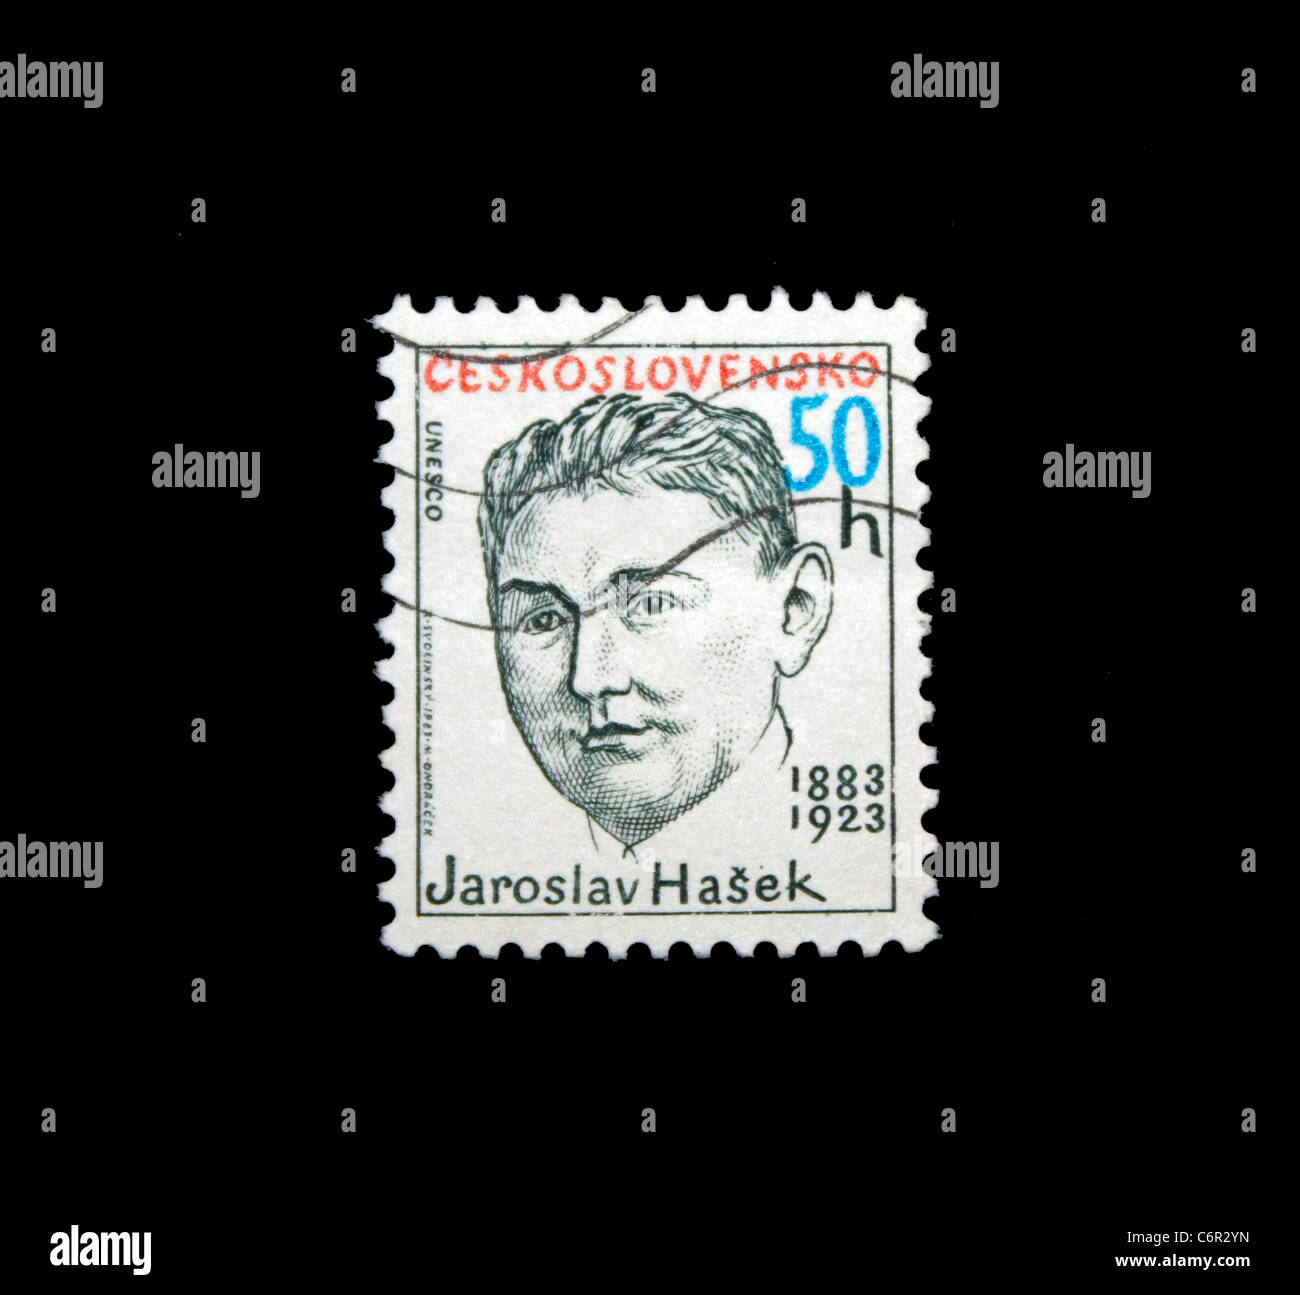 A Postage stamp isolated in black Stock Photo